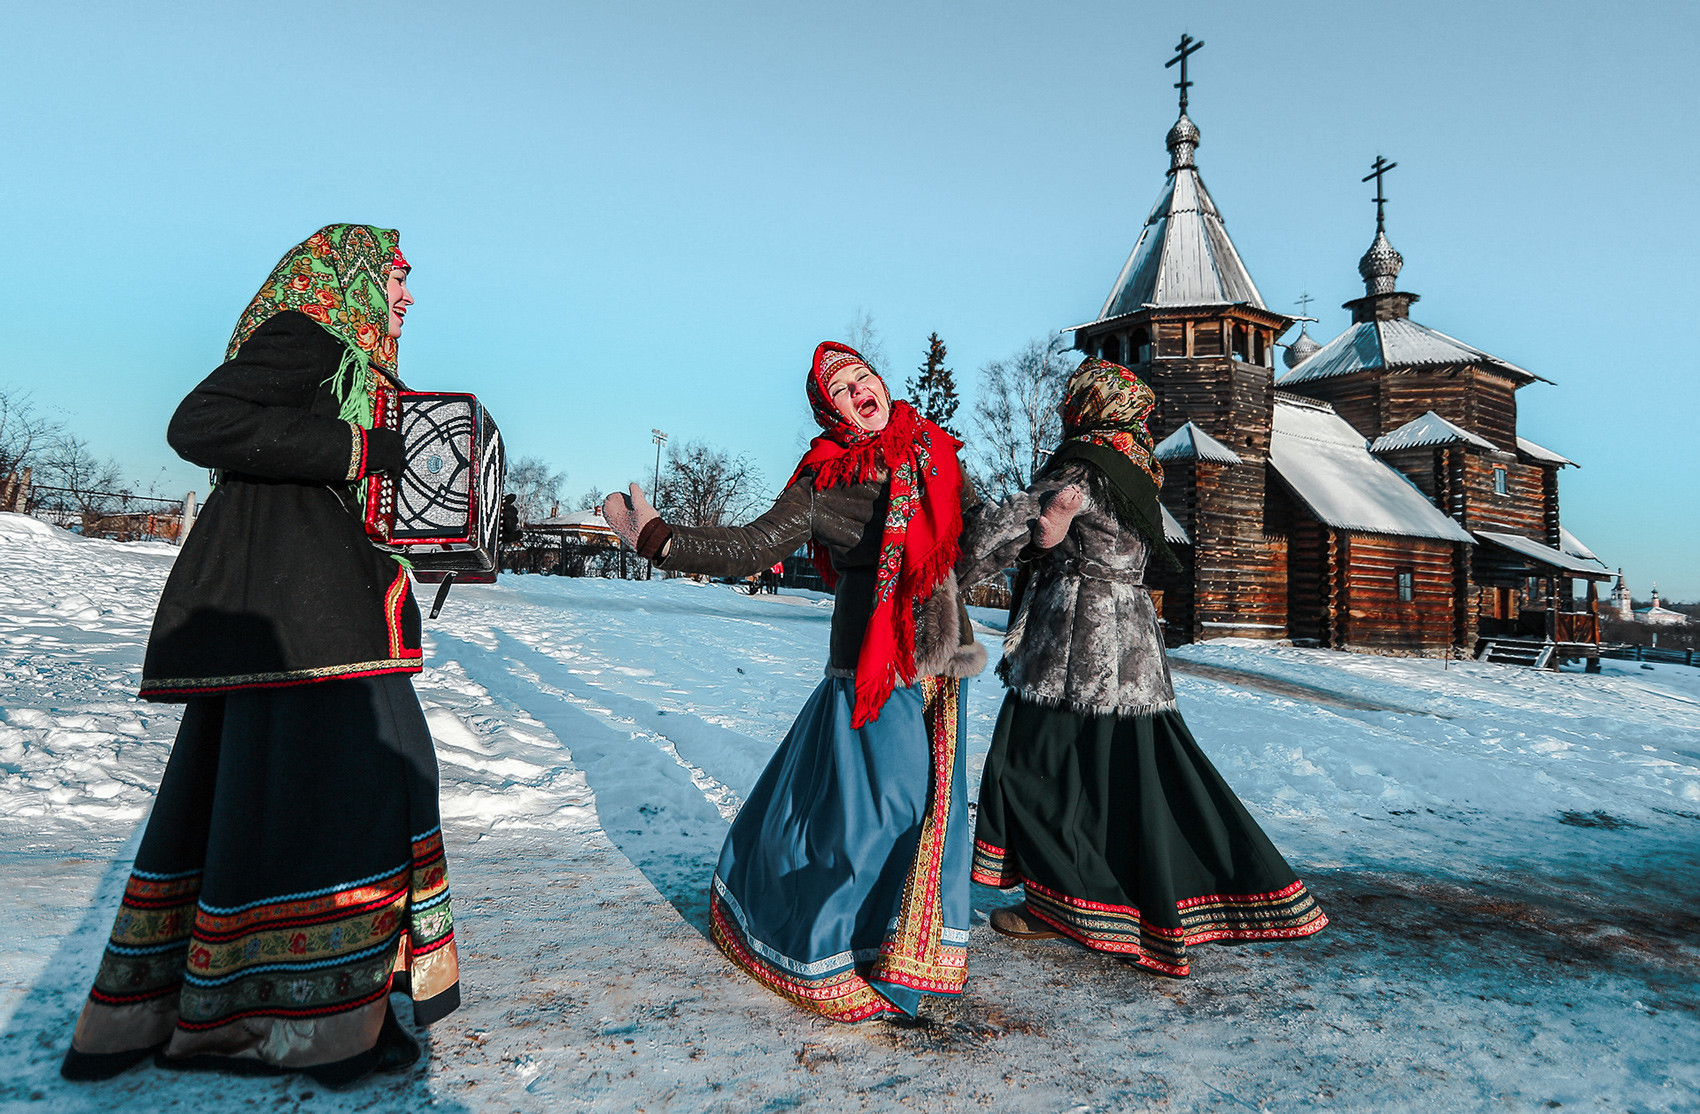 Suzdal during Maslenitsa